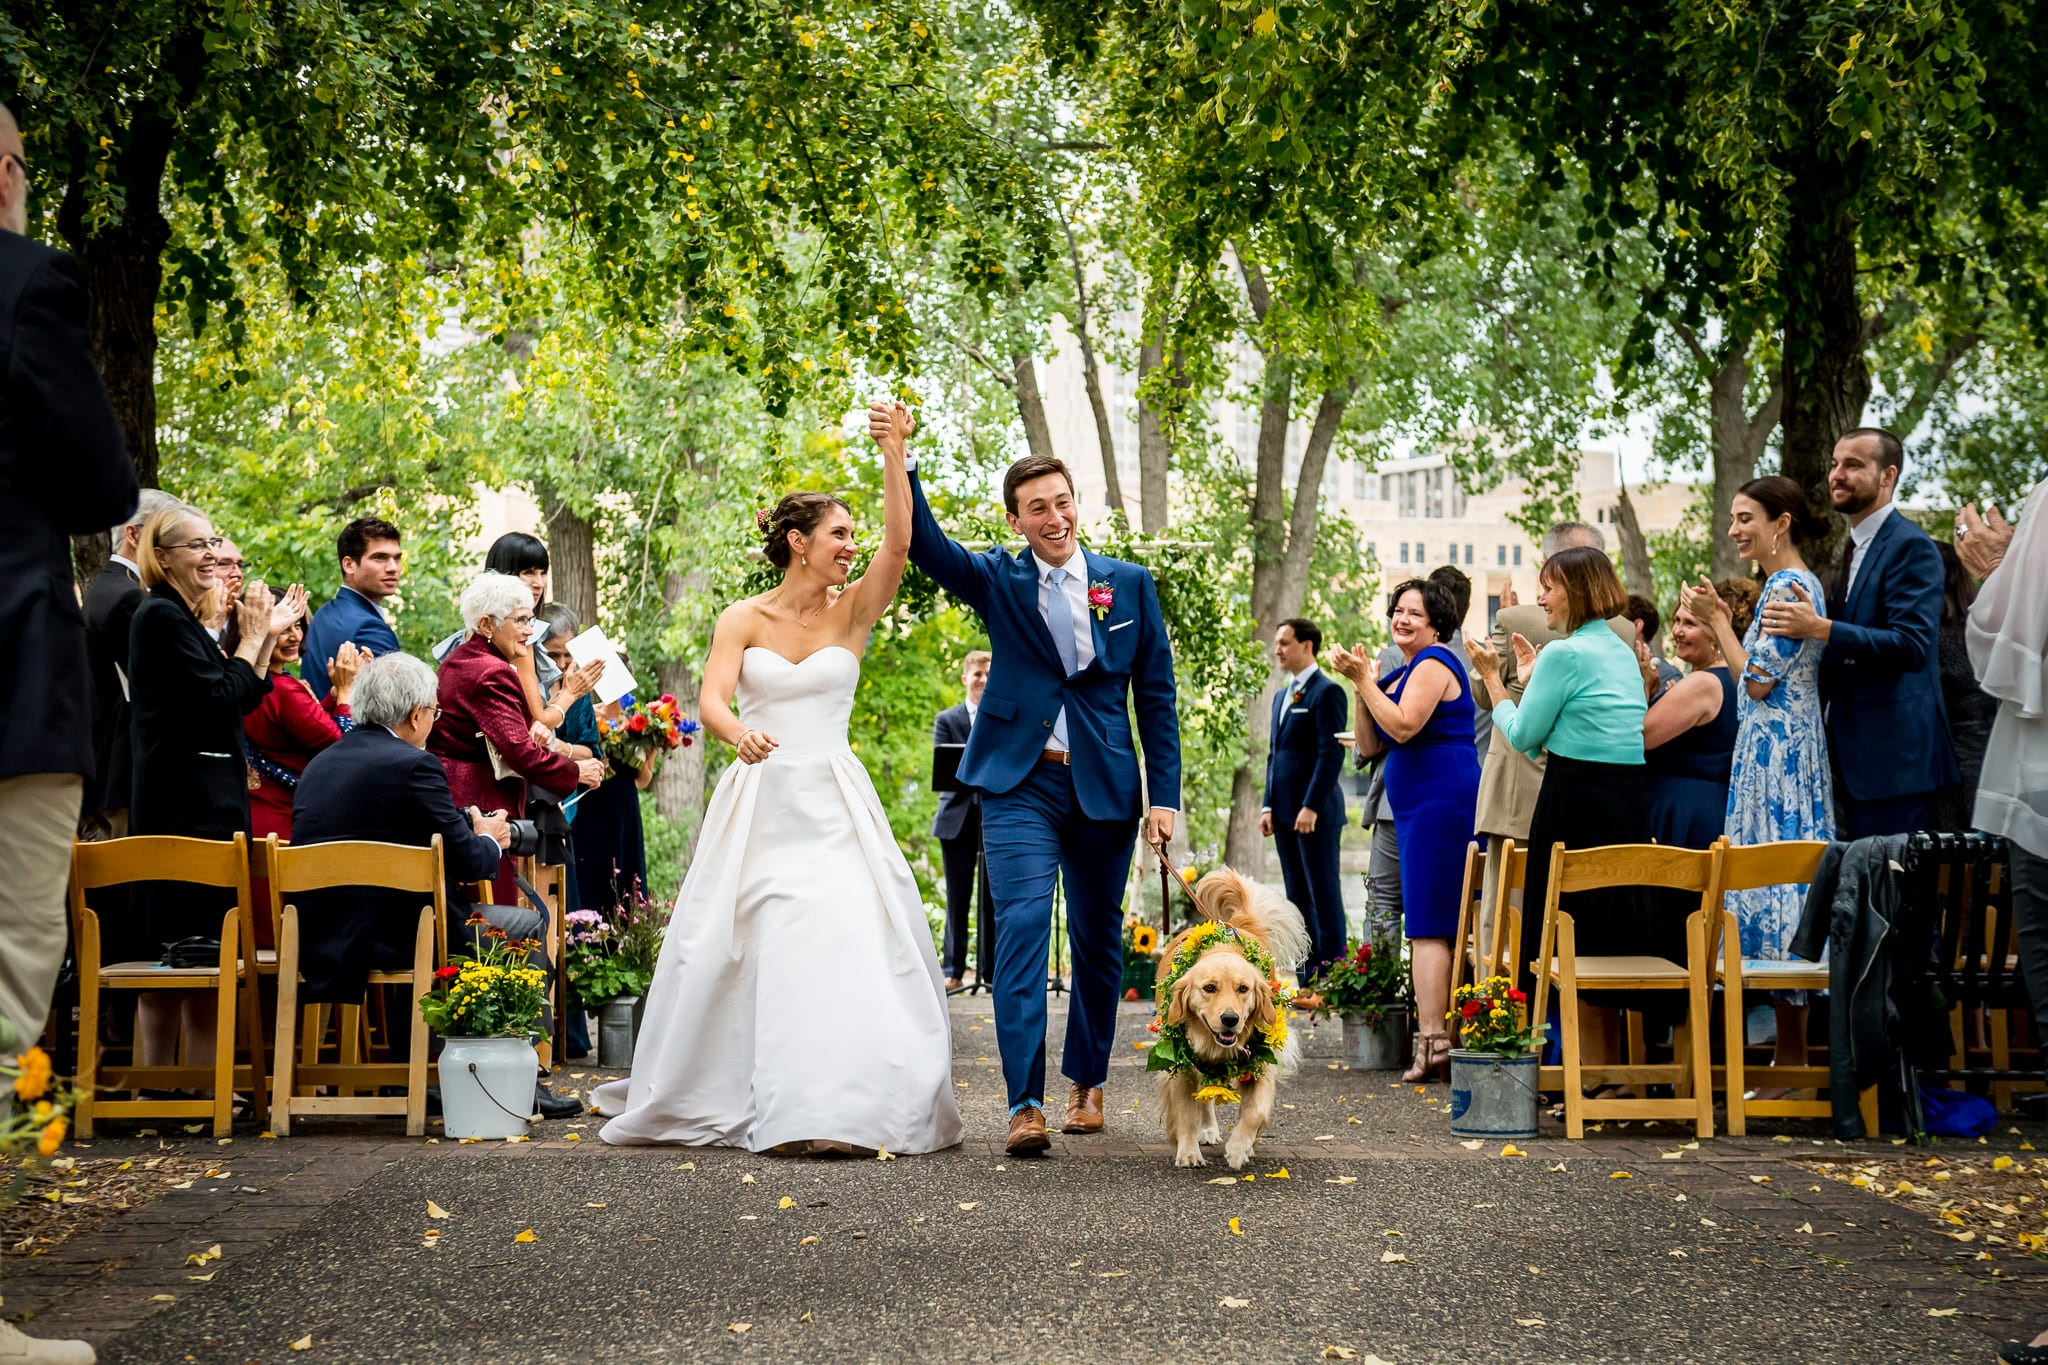 Bride and groom are announced as a married couple as they walk back out the isle, with their arms high in the air, and with their golden retriever ring bearer, during their wedding ceremony at the Nicollet Island Pavilion